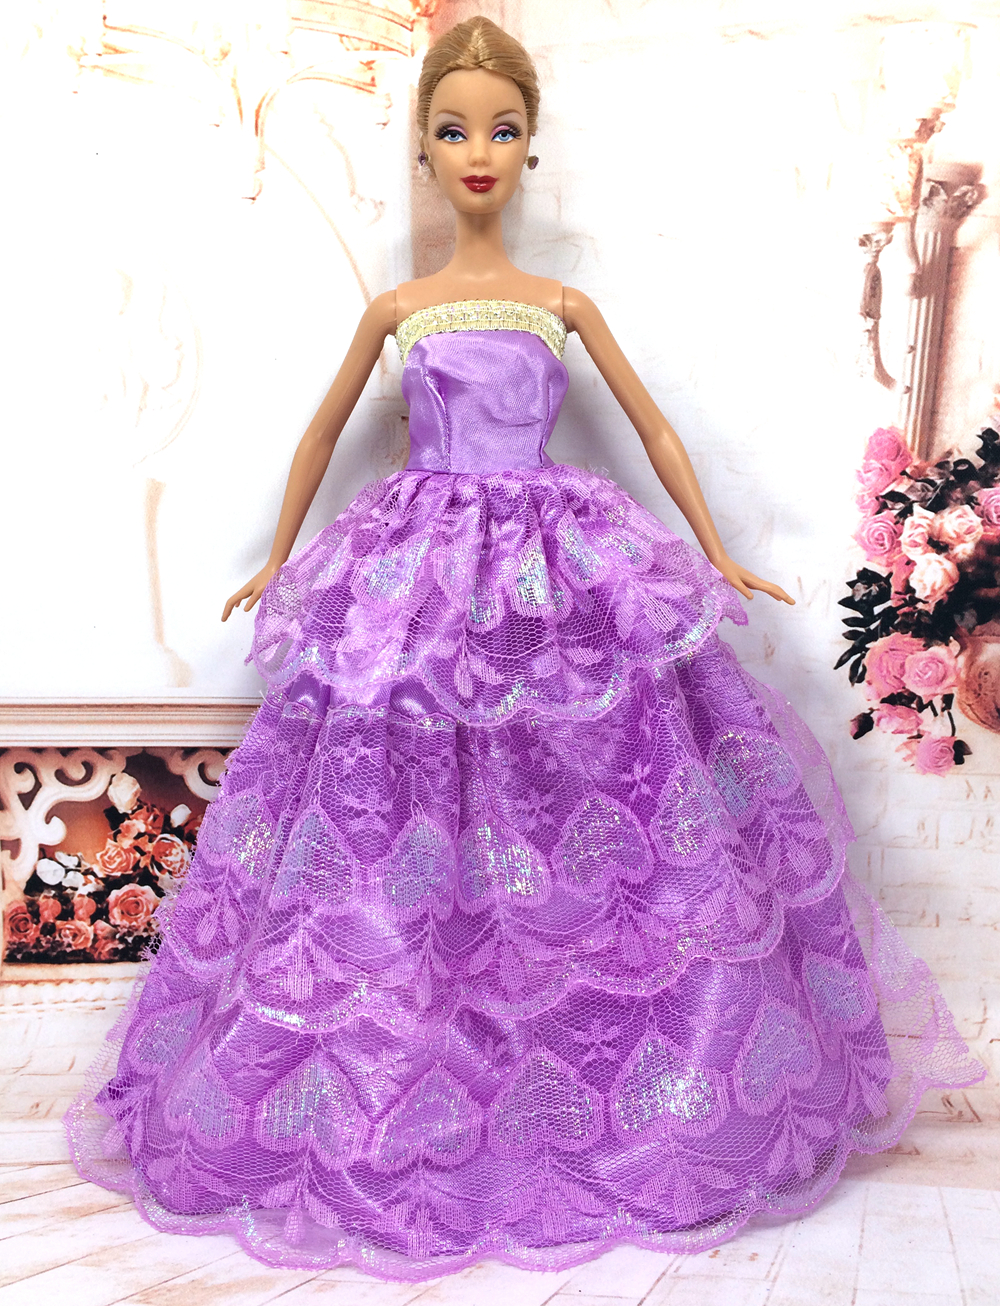 NK One Pcs Princess Purple Wedding Dress Noble Party Gown For Barbie Doll Fashion Design Outfit Best Gift For Girl' Doll 030A